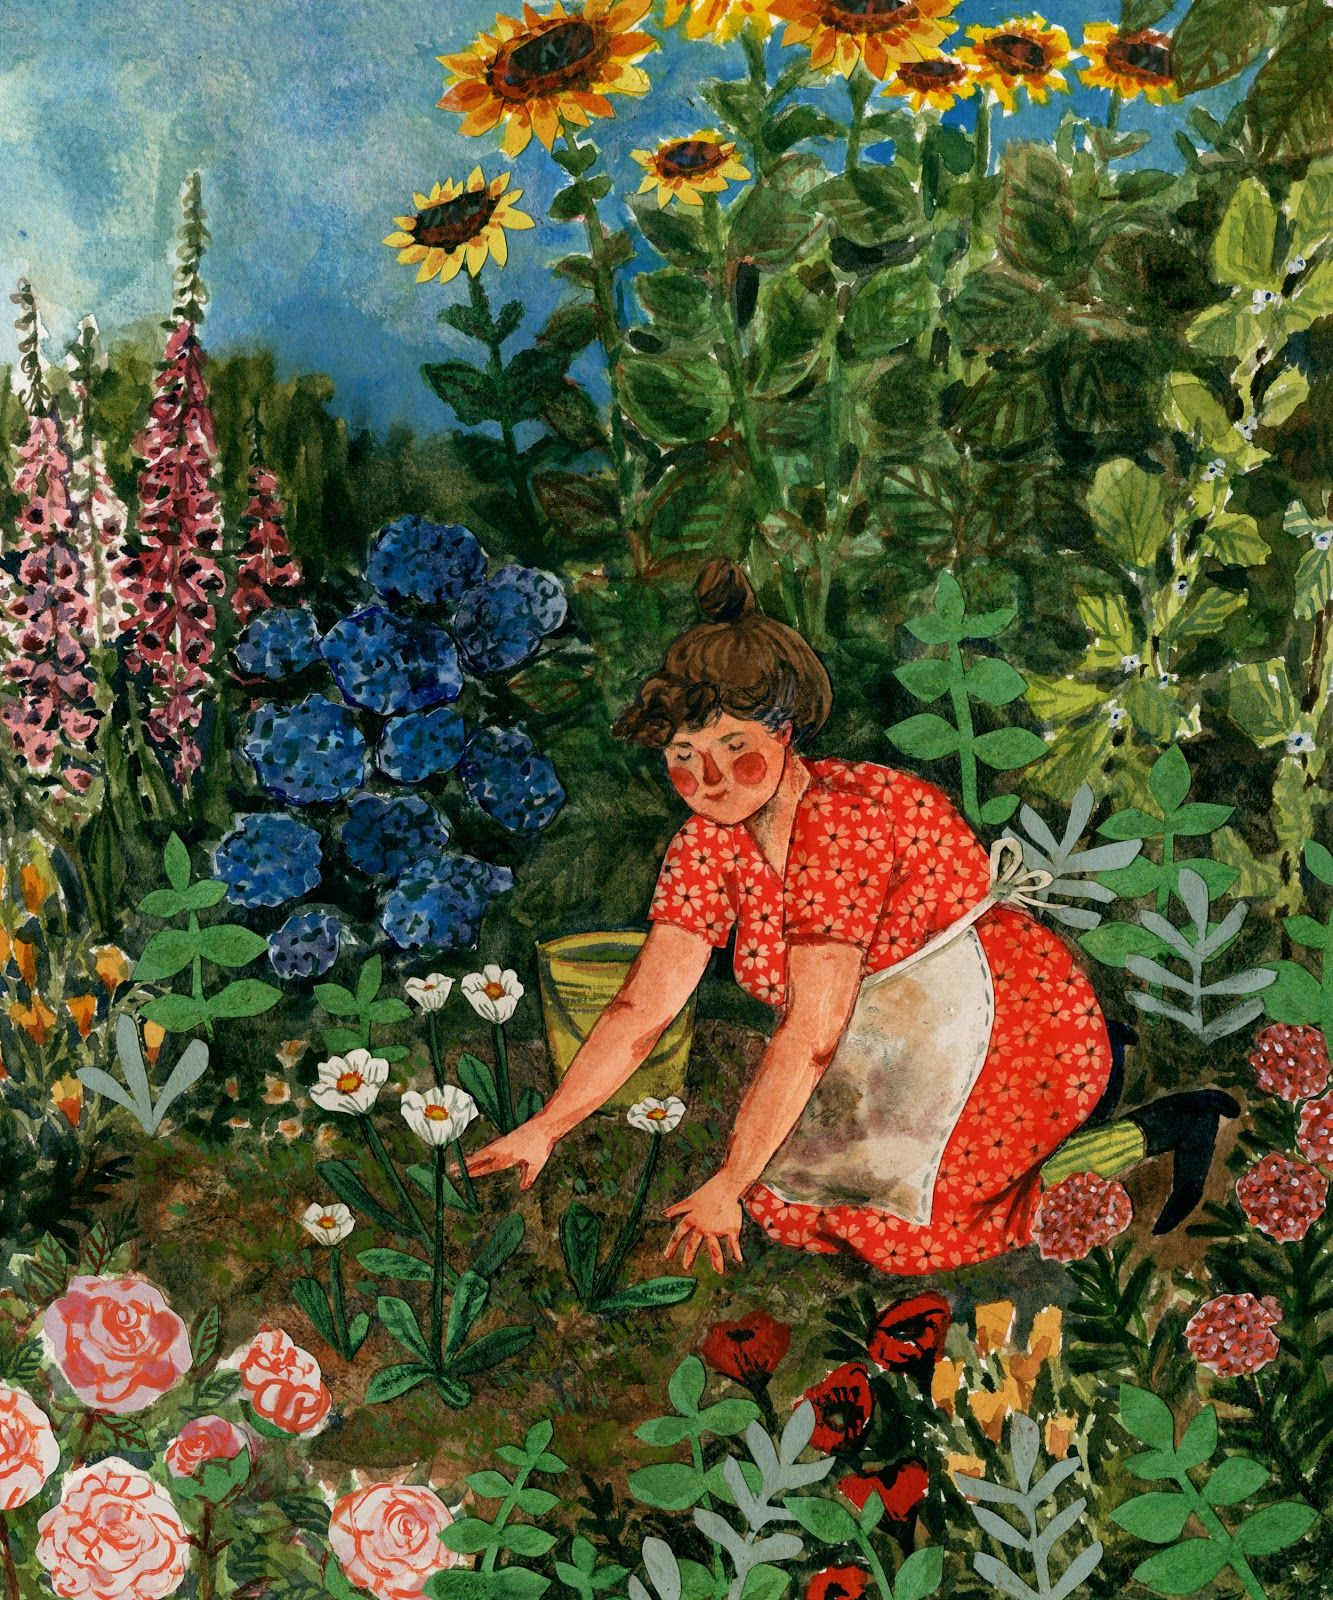 Linnea Im Garten Des Malers Ida Honeycrumble By Phoebe Wahl Paintings And More